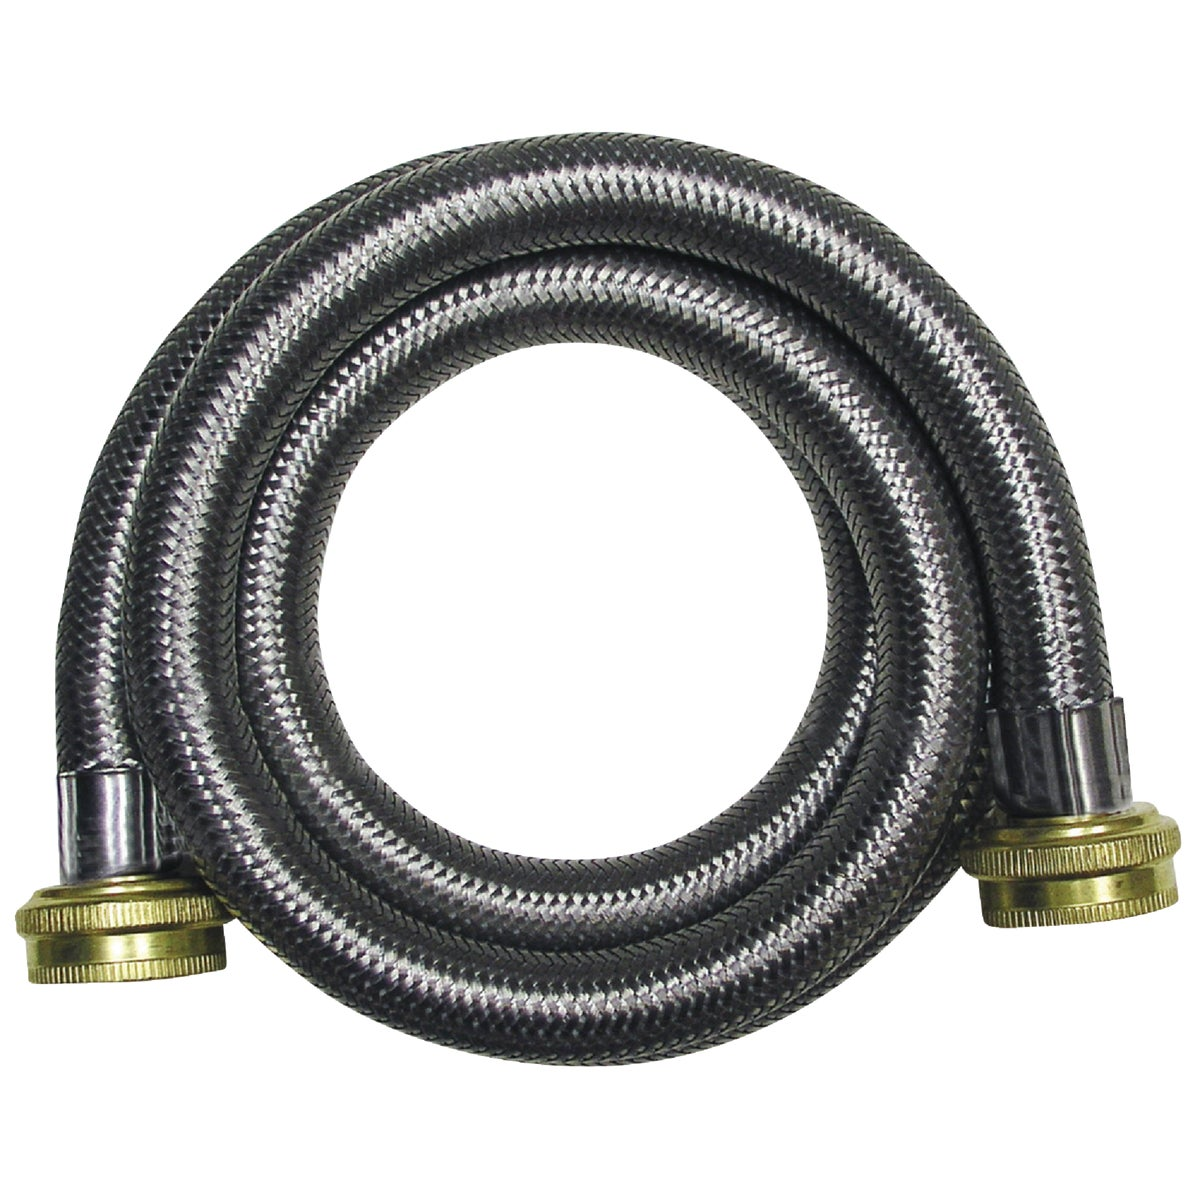 "72"" WASHING MACHINE HOSE - 431788 by Watts Regulator Co"